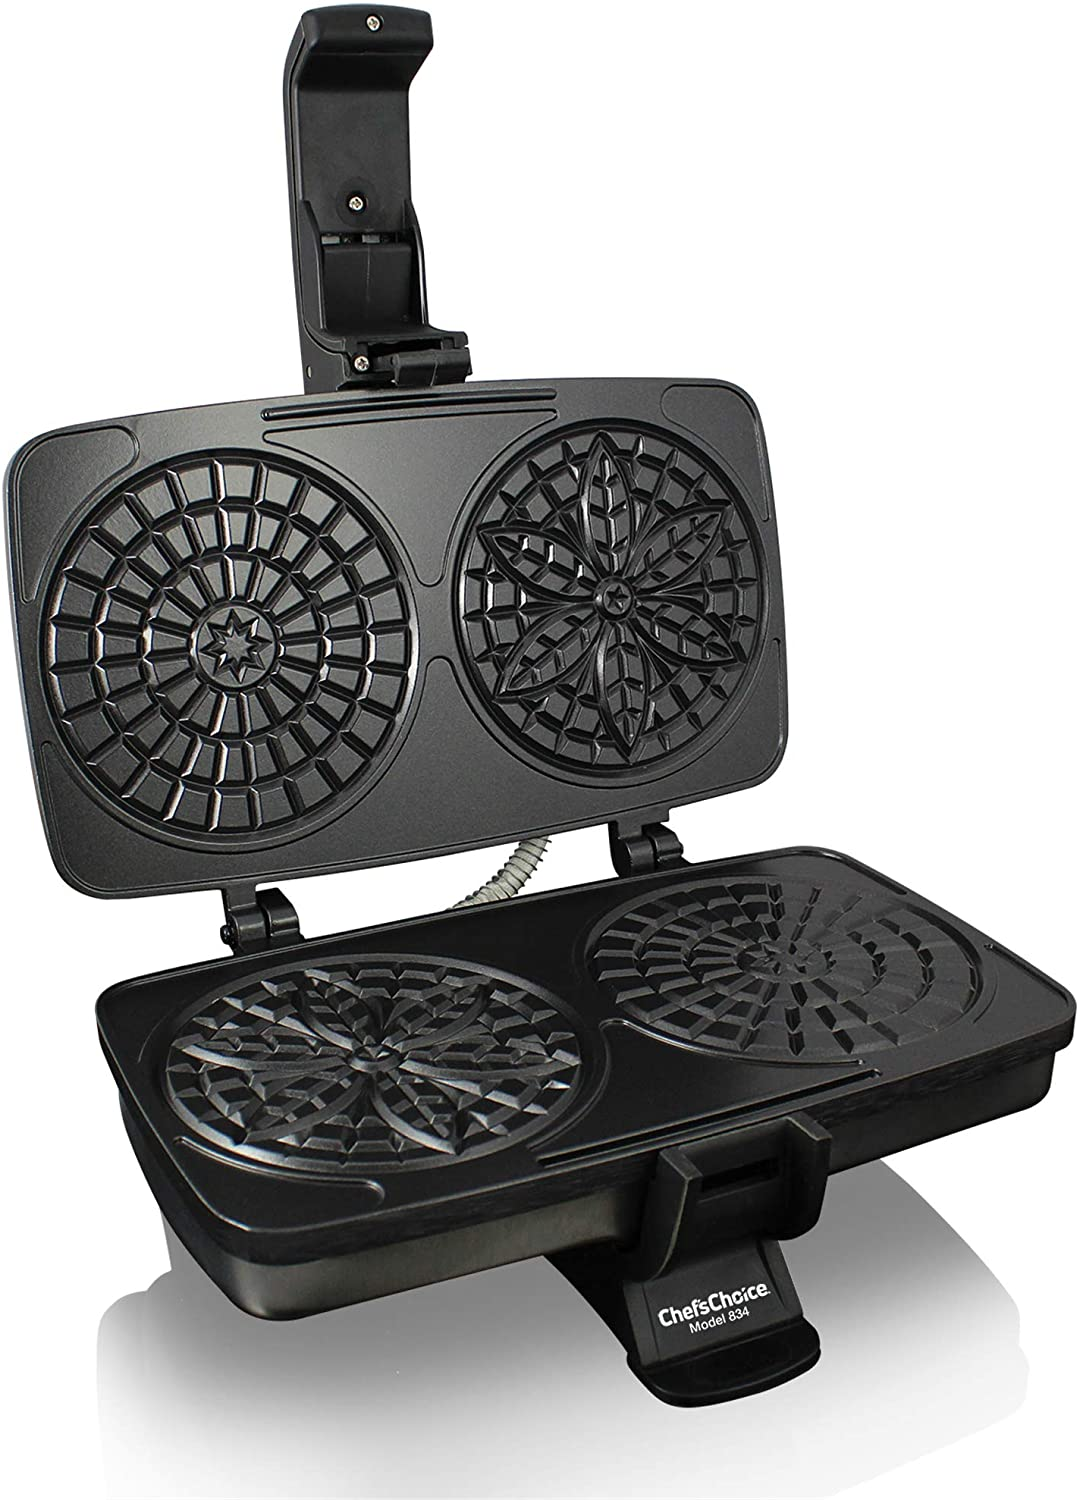 Chef's Choice 834 Toscano Nonstick Pizzelle Maker